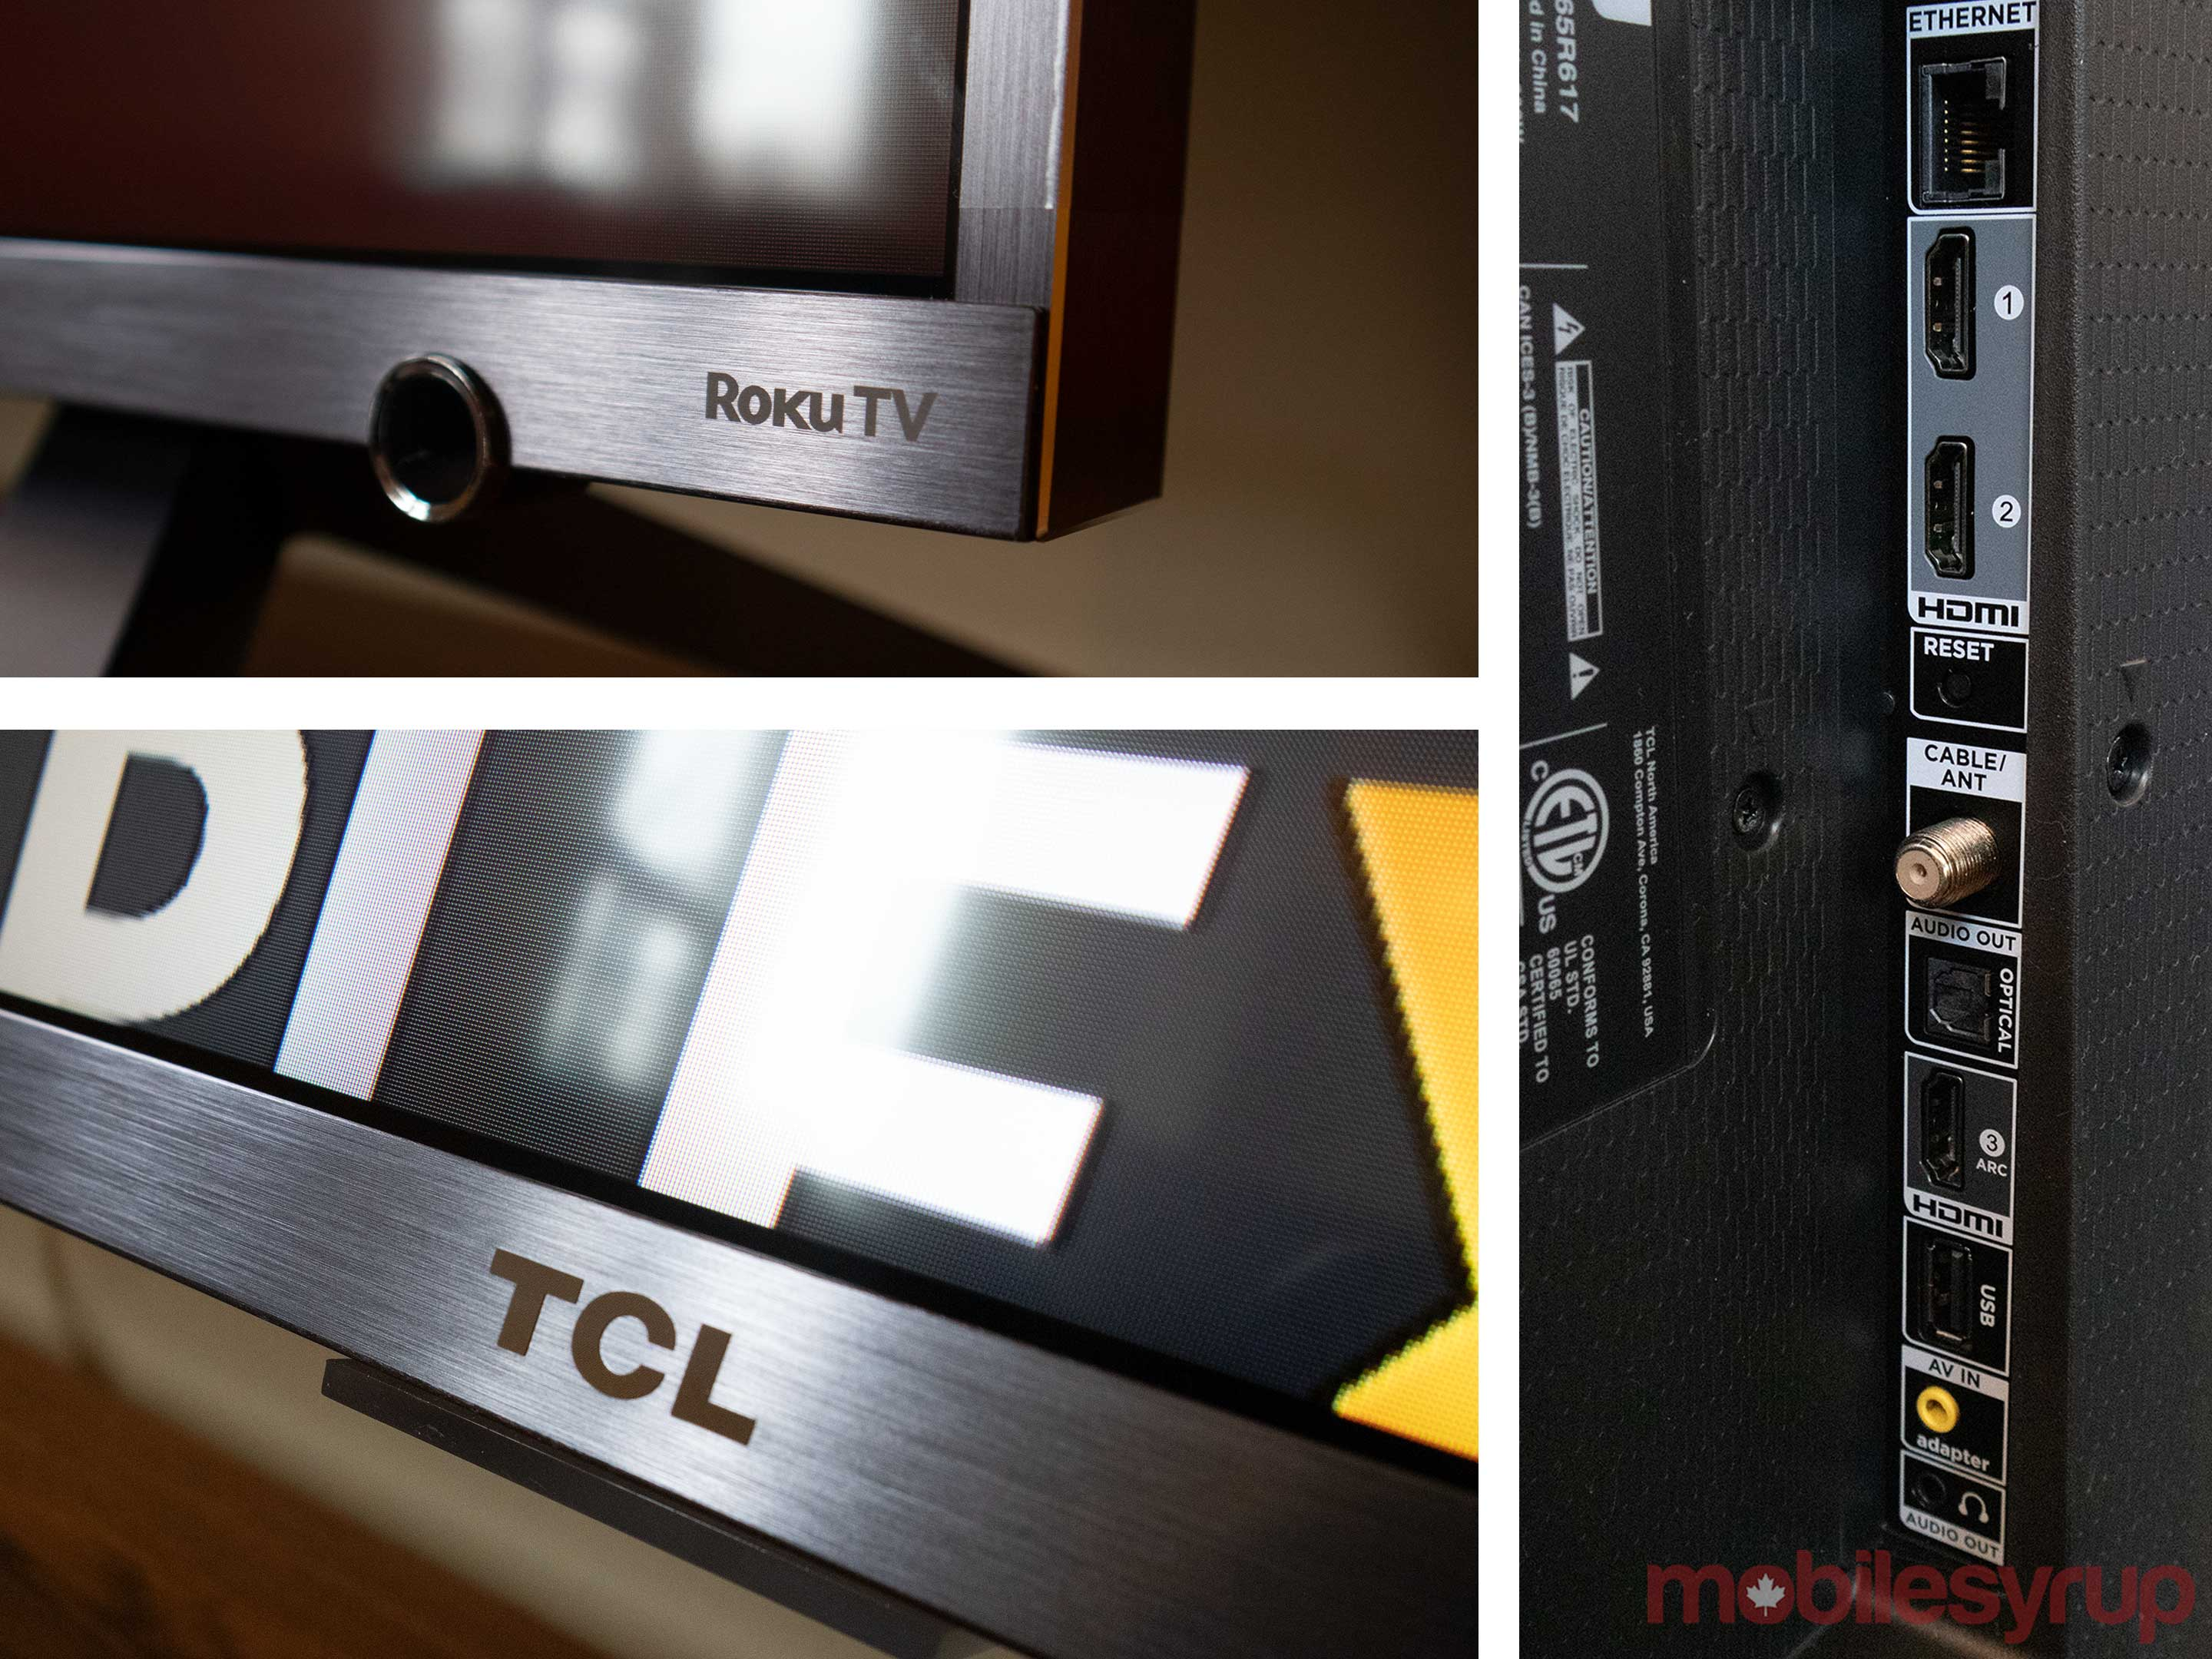 TCL's Series-4 and Series-6 TV offer high-end features for a